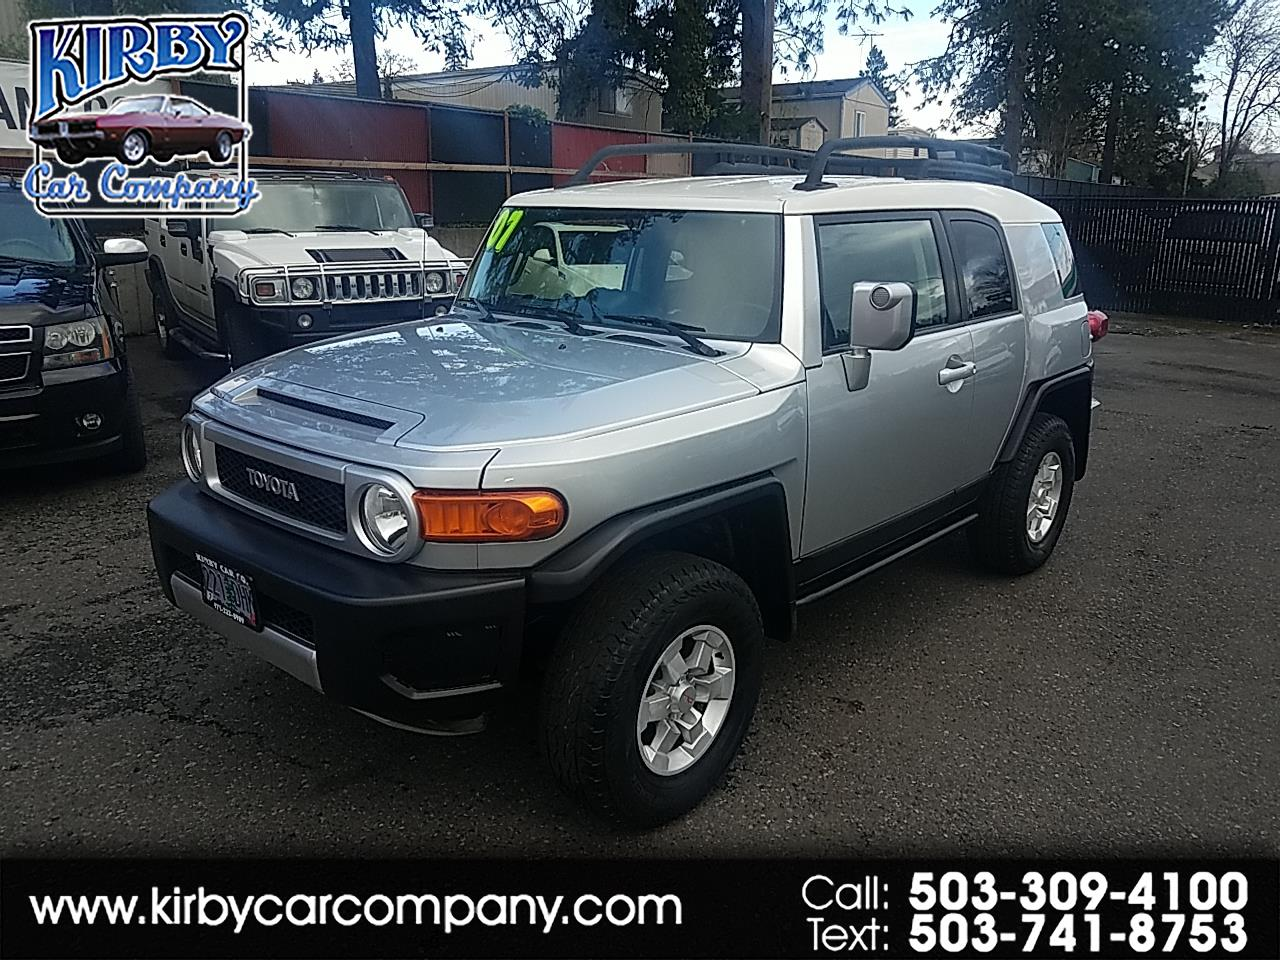 2007 Toyota FJ Cruiser  for sale VIN: JTEBU11F770094406